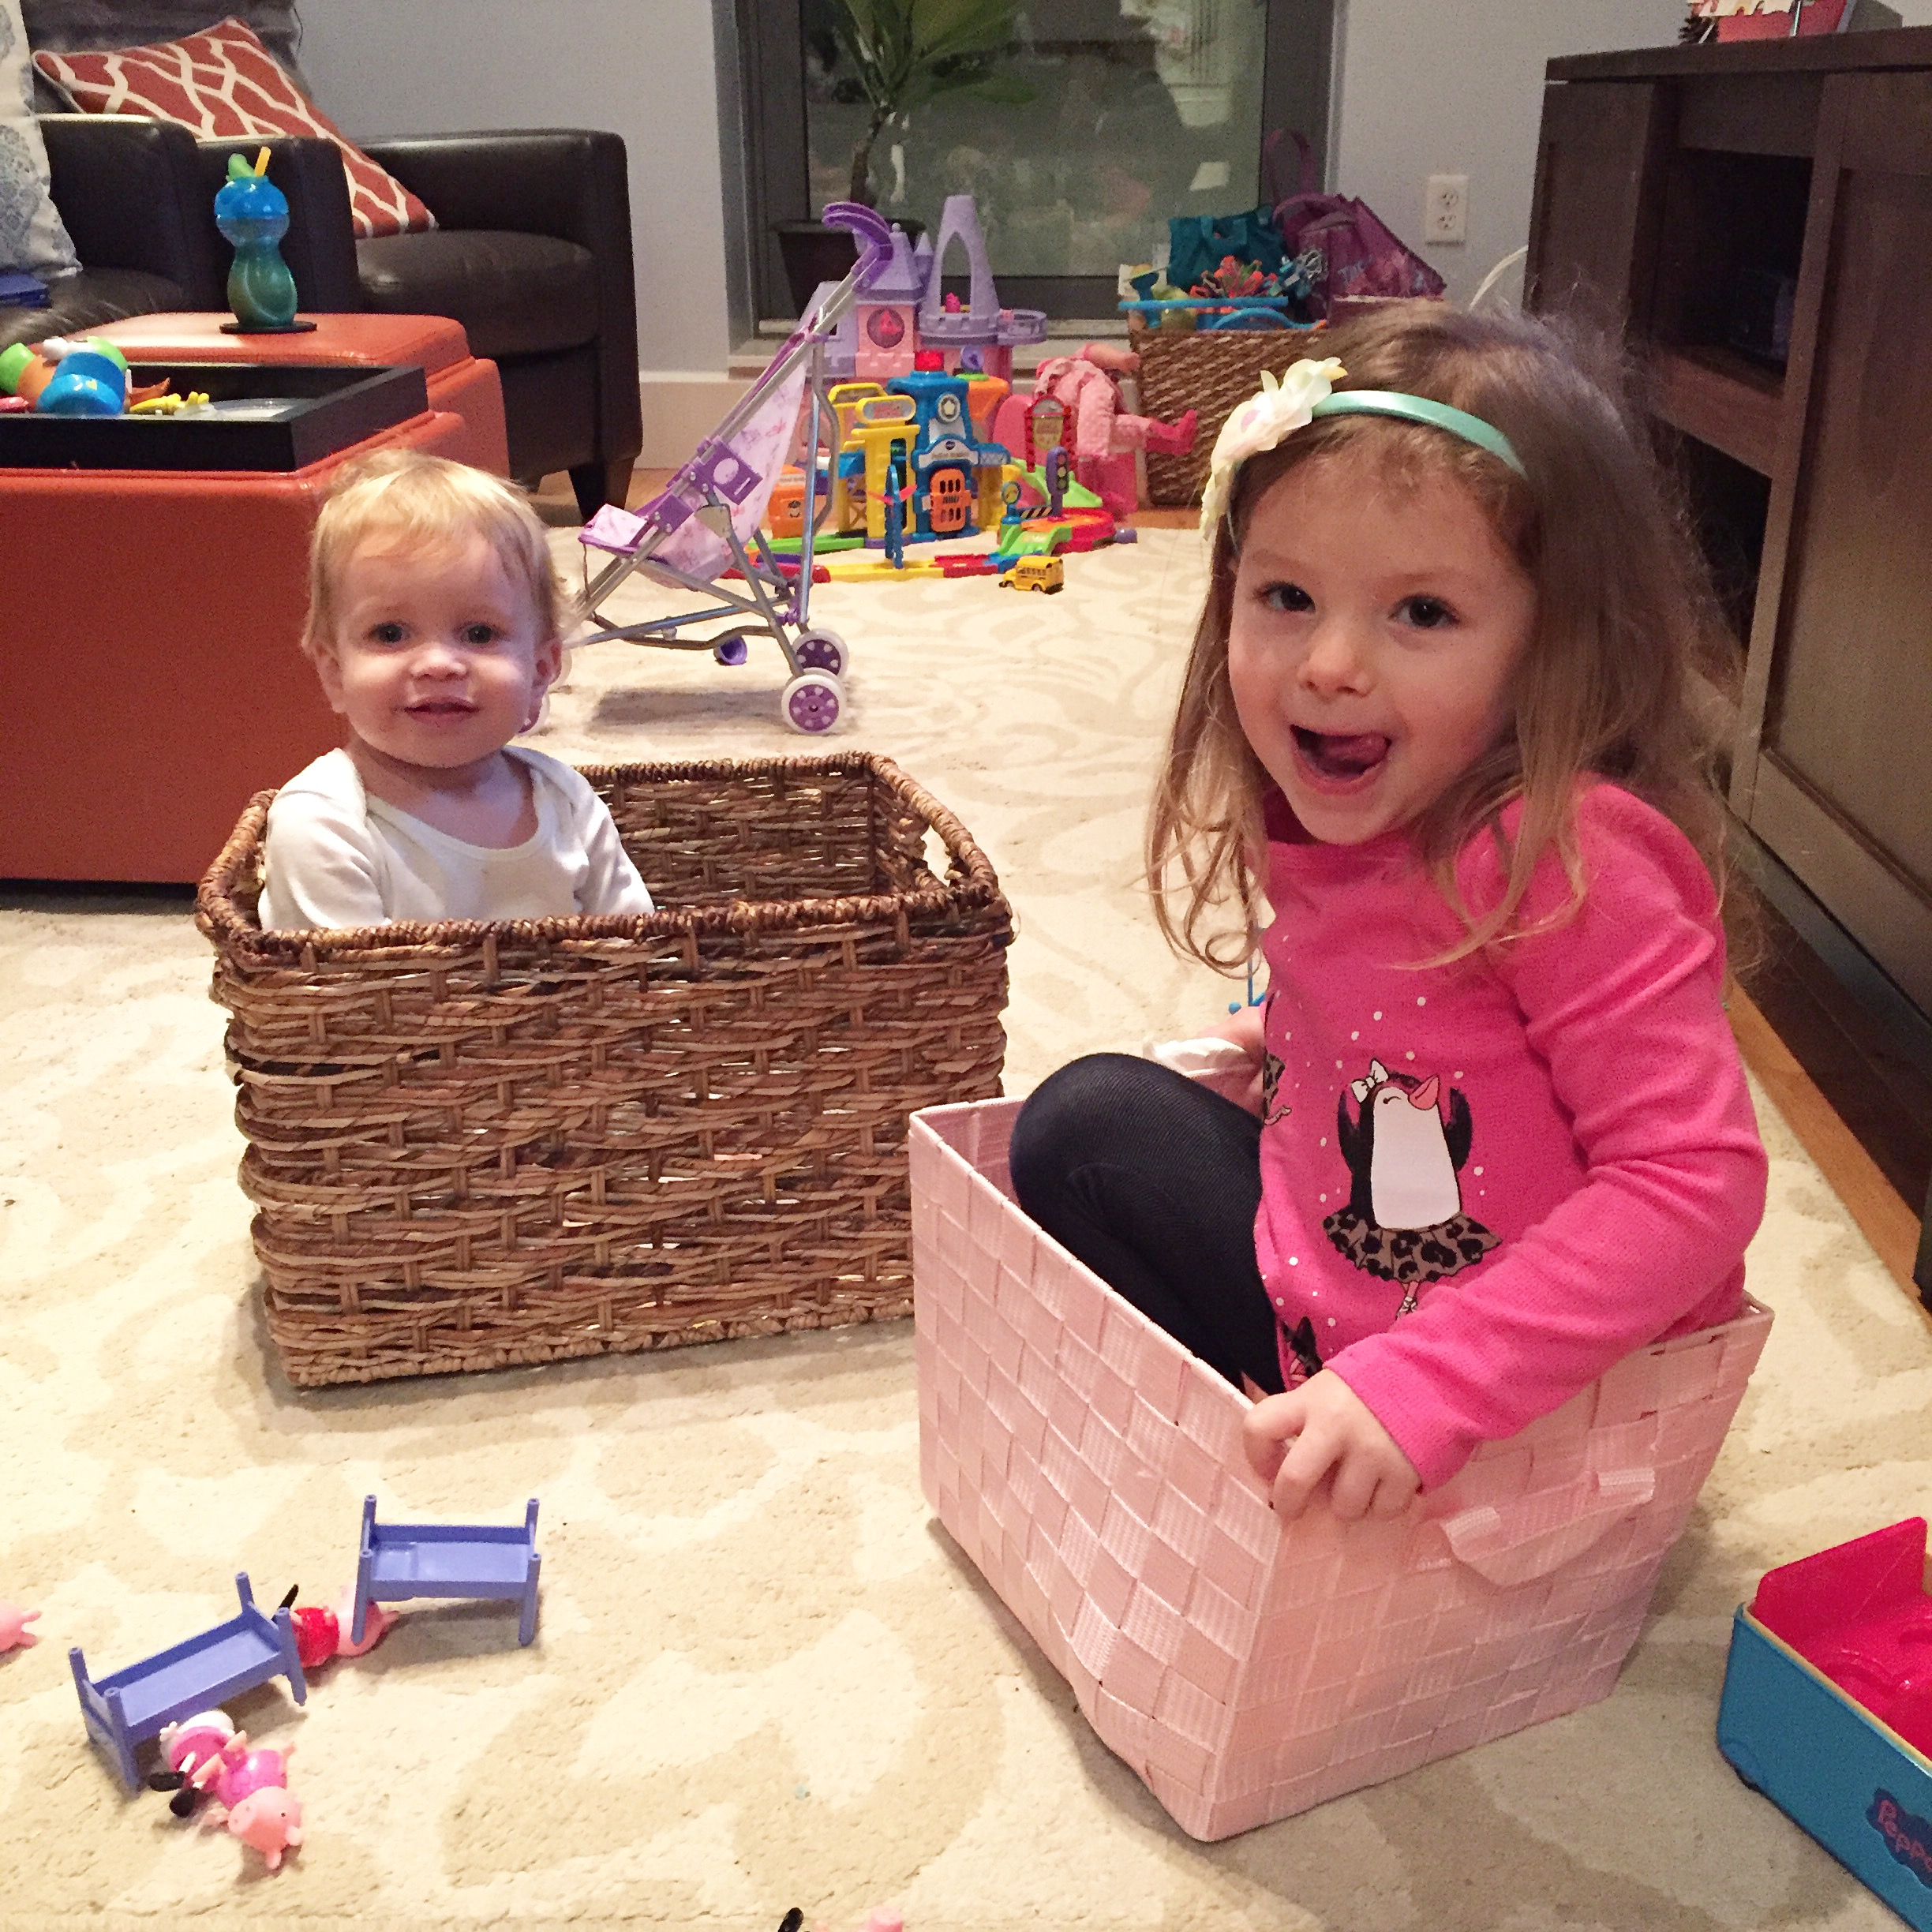 penelope + megan's son hunter in baskets during the blizzard. they did this on their own. i swear.